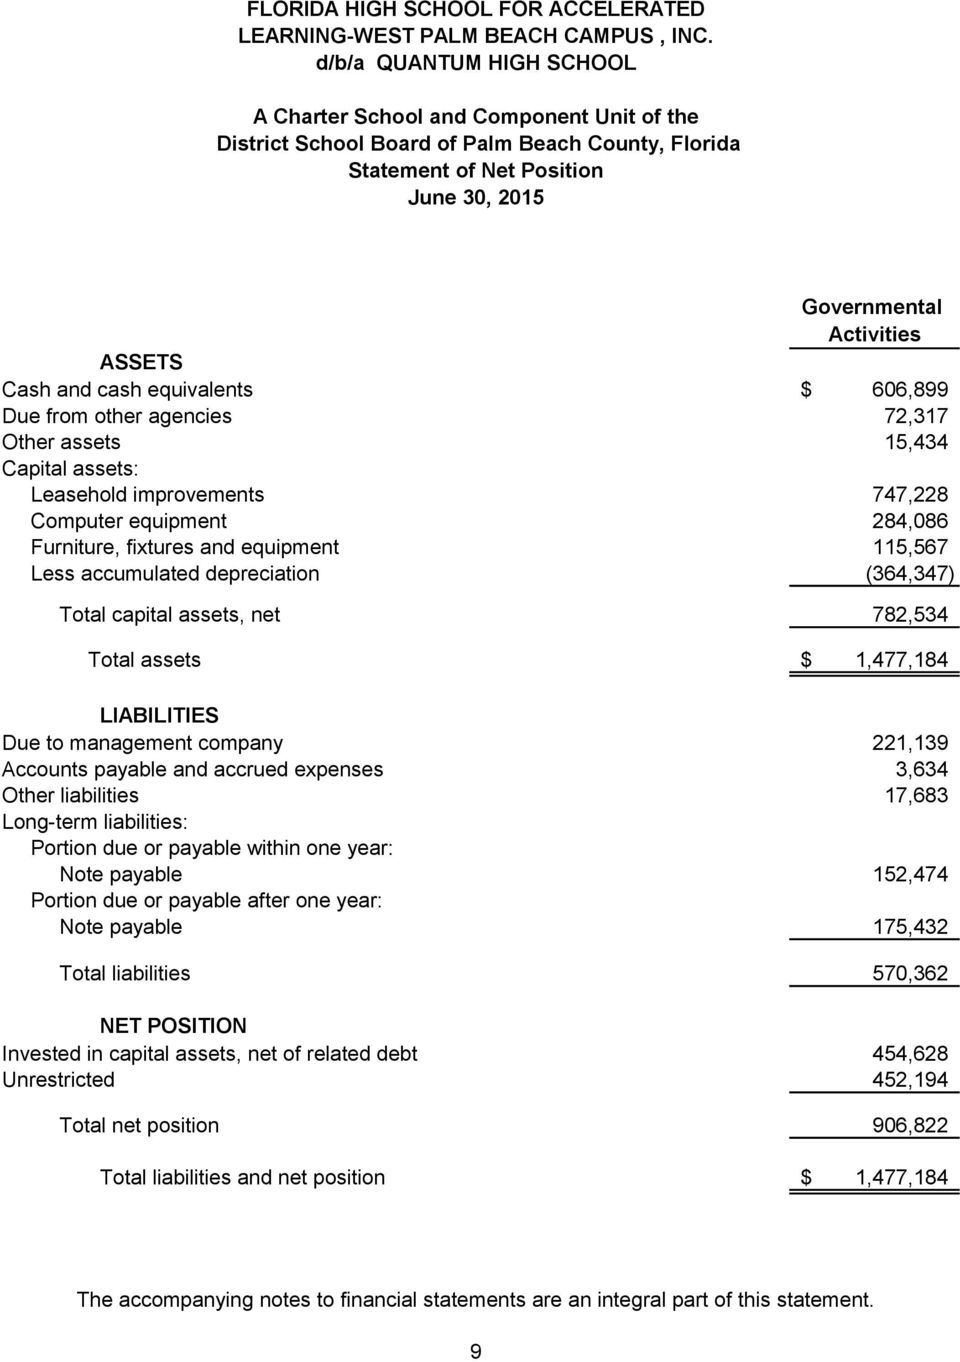 747,228 Computer equipment 284,086 Furniture, fixtures and equipment 115,567 Less accumulated depreciation (364,347) Total capital assets, net 782,534 Total assets $ 1,477,184 LIABILITIES Due to